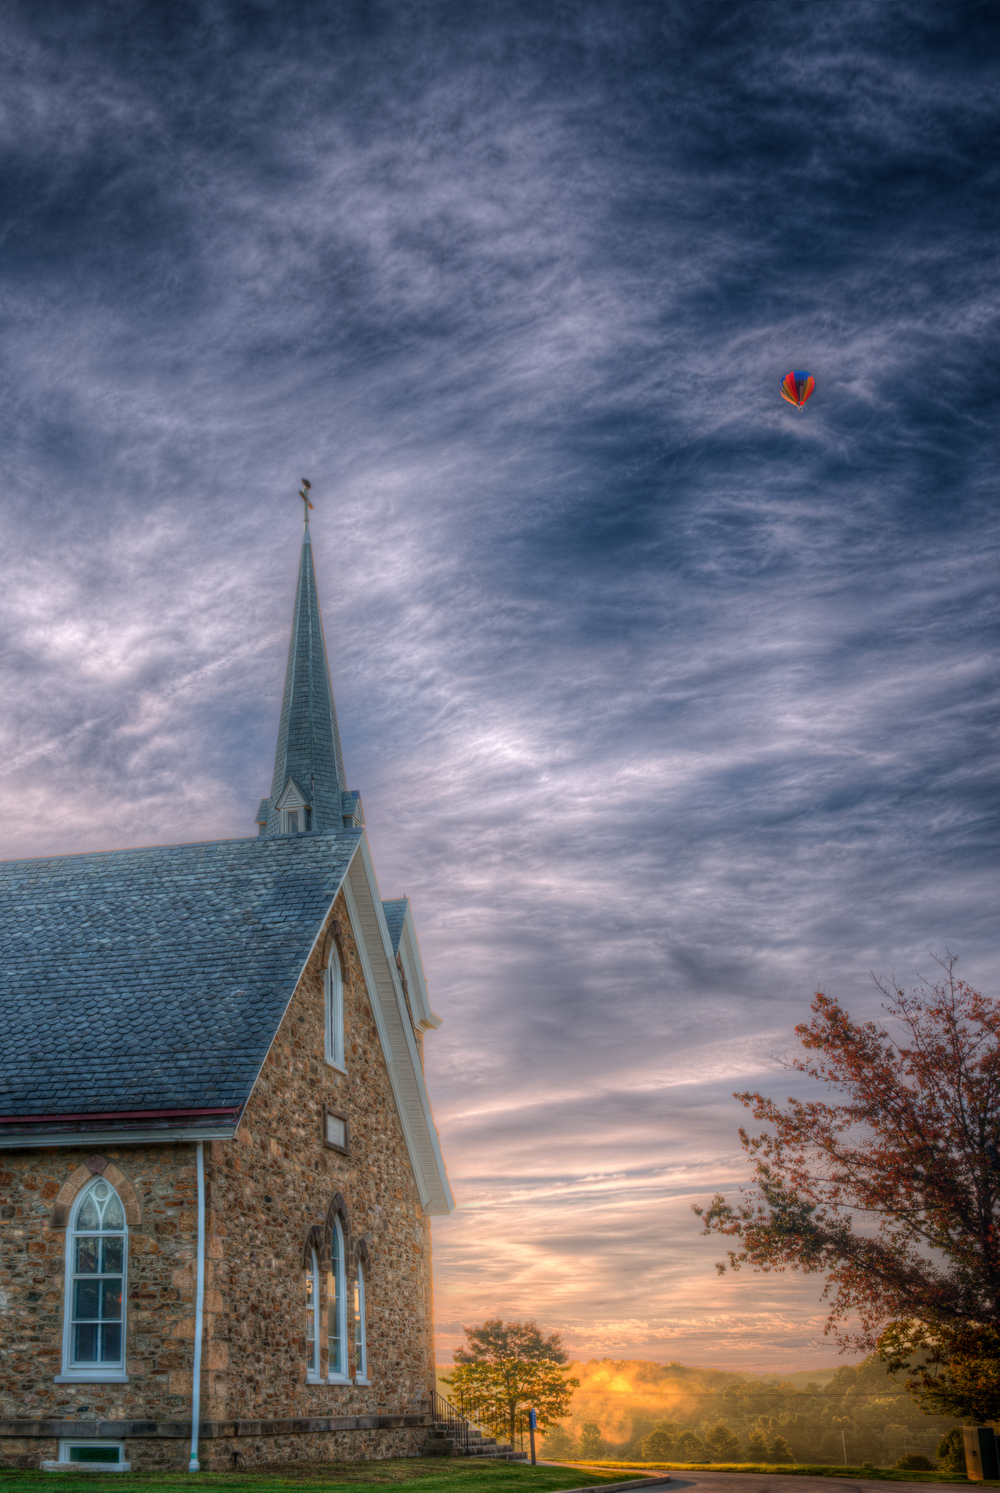 Church with Balloon in the Early Morning